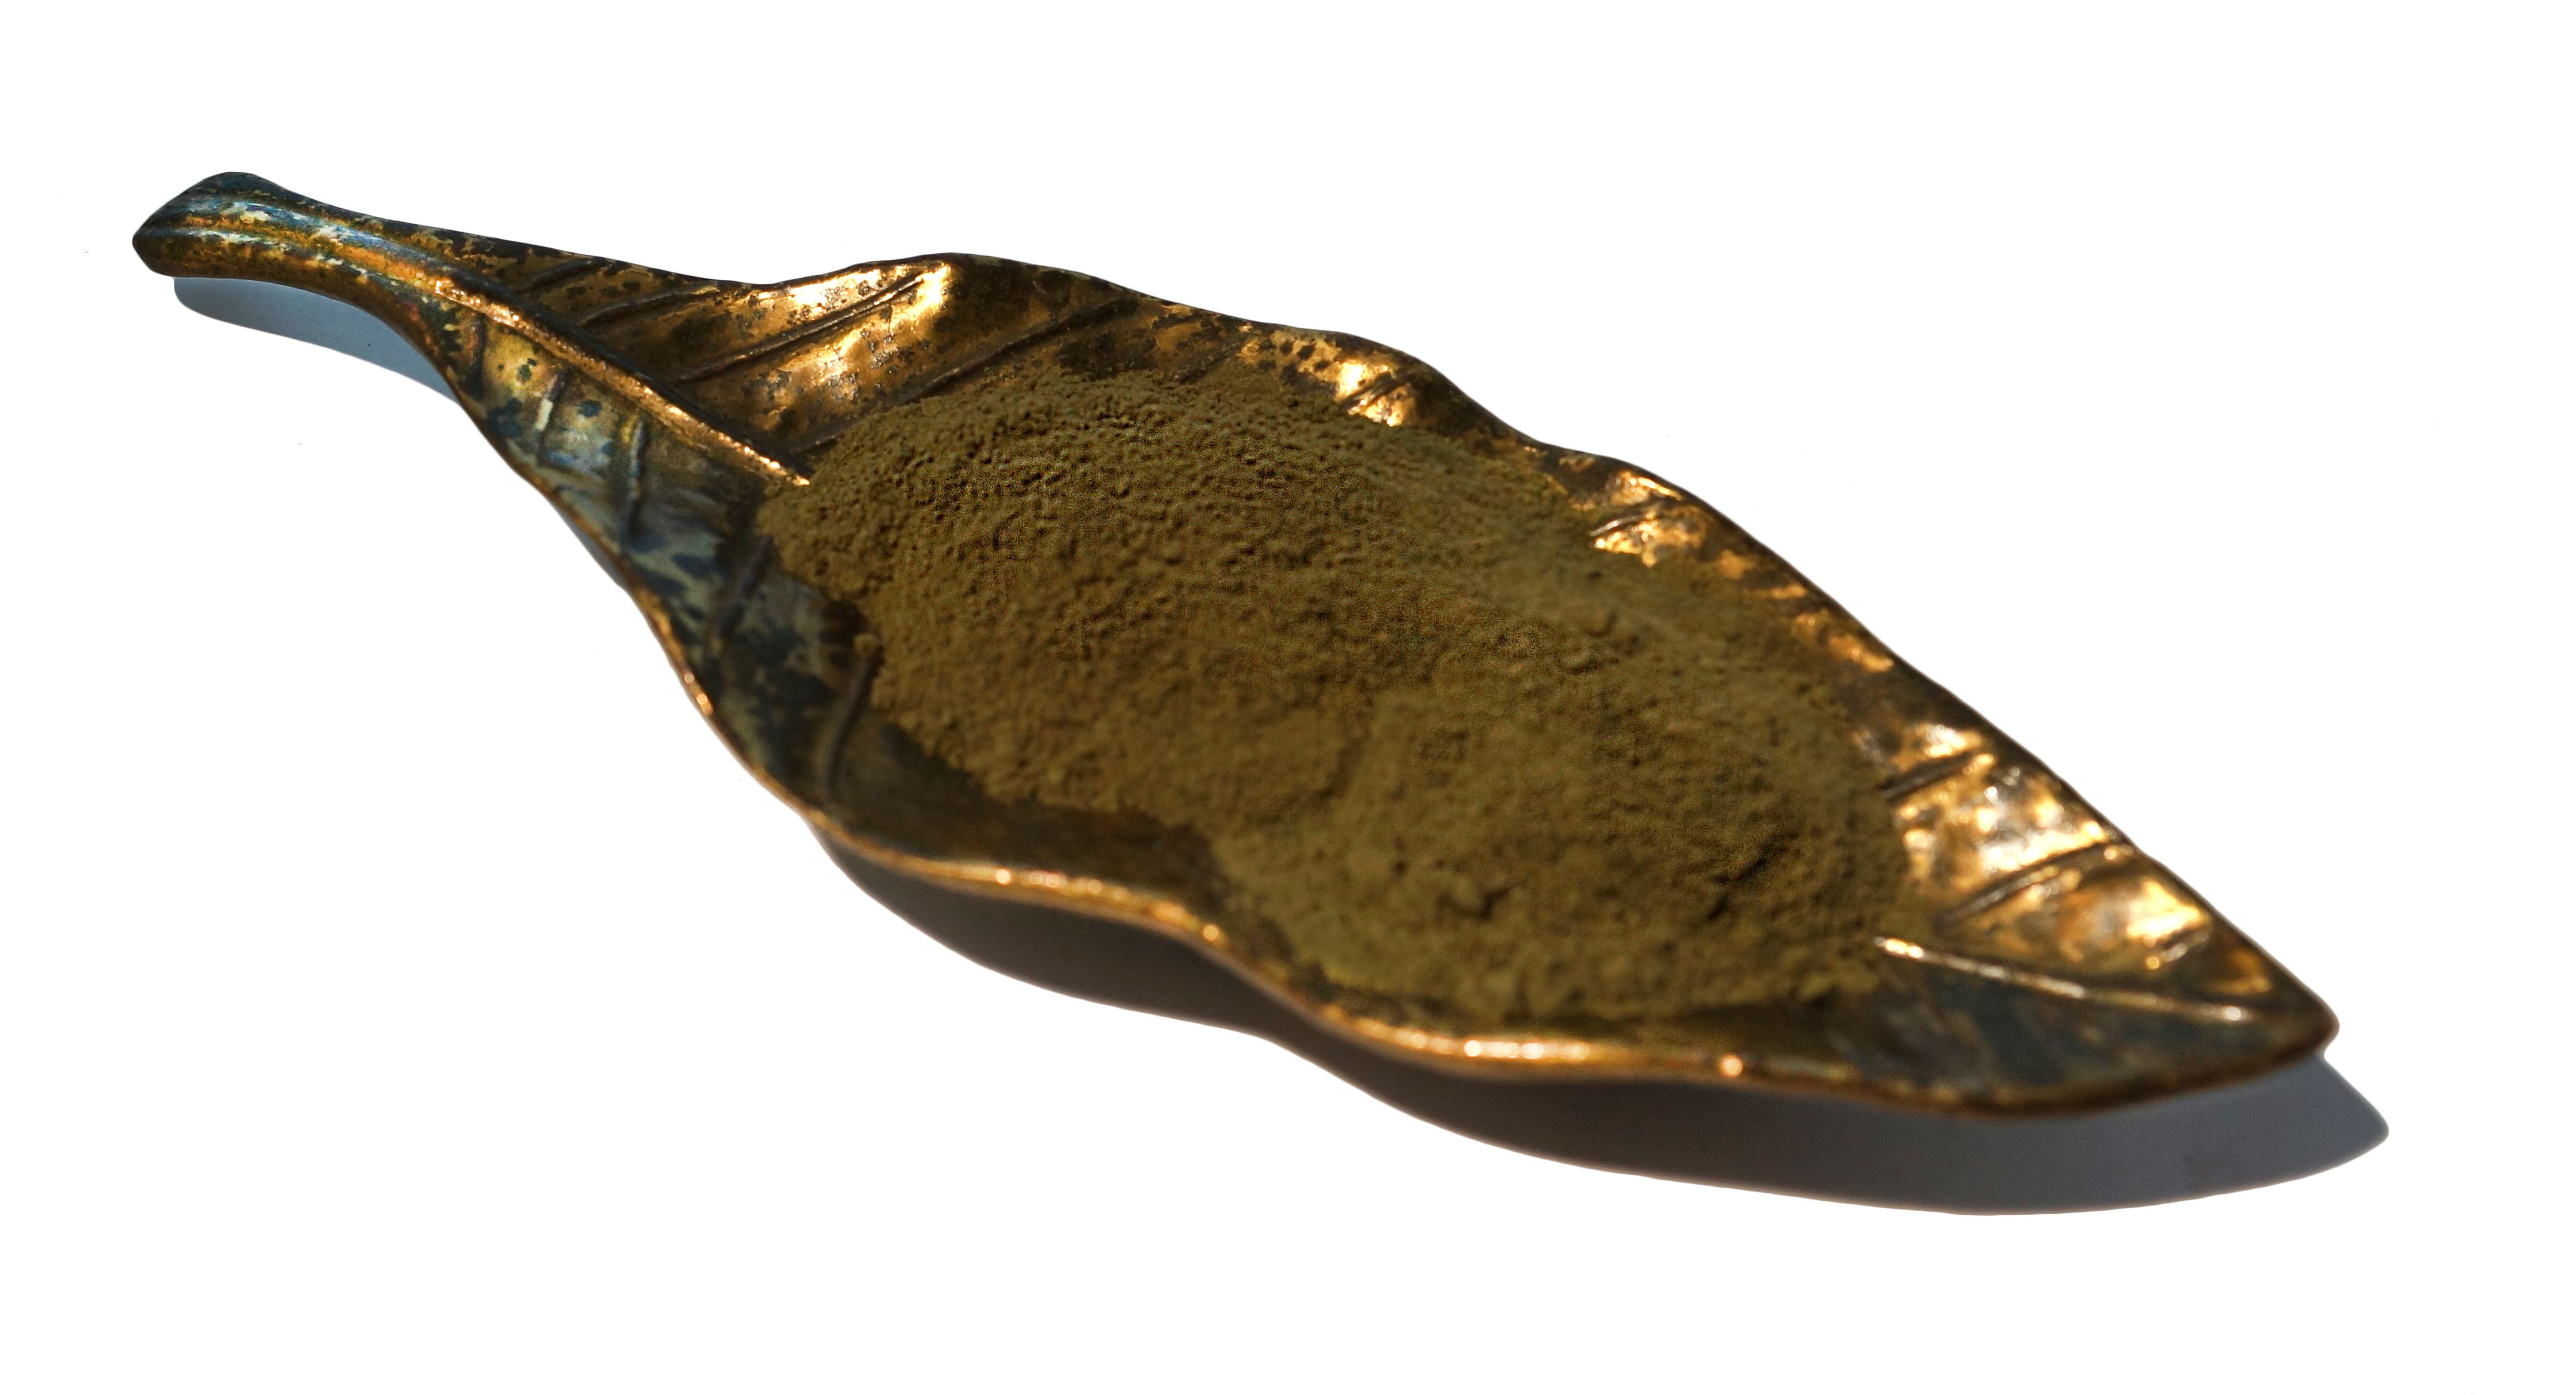 This is our House Blend Kratom. It is a blend of Red, Green, and White Kratoms. You can find it here: http://thekratomleaf.com/product/borneo-maeng-dagreen-blend-kratom-powder/